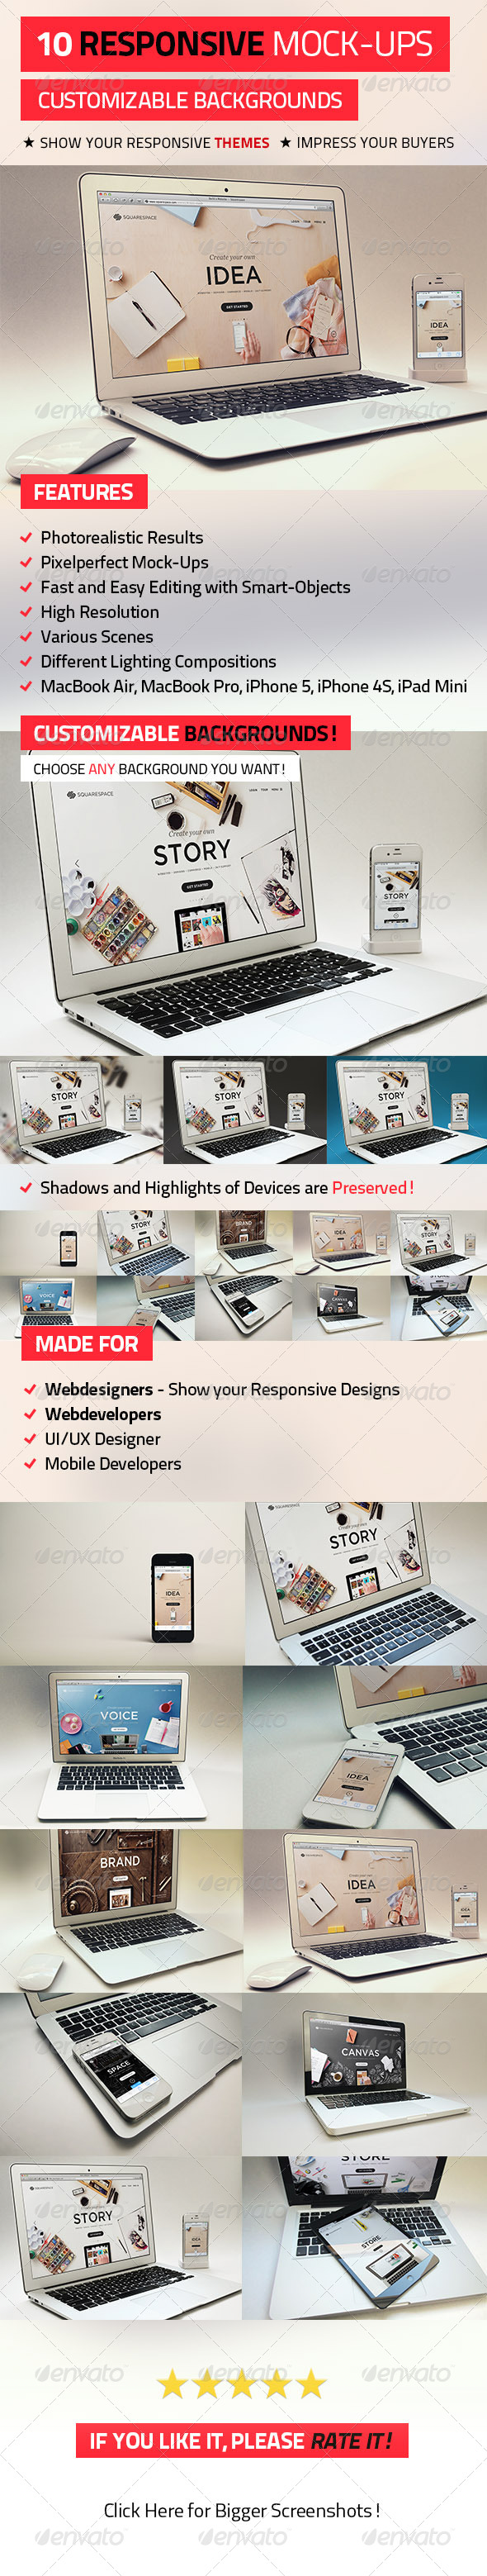 GraphicRiver 10 Responsive Mock-Ups 5039011